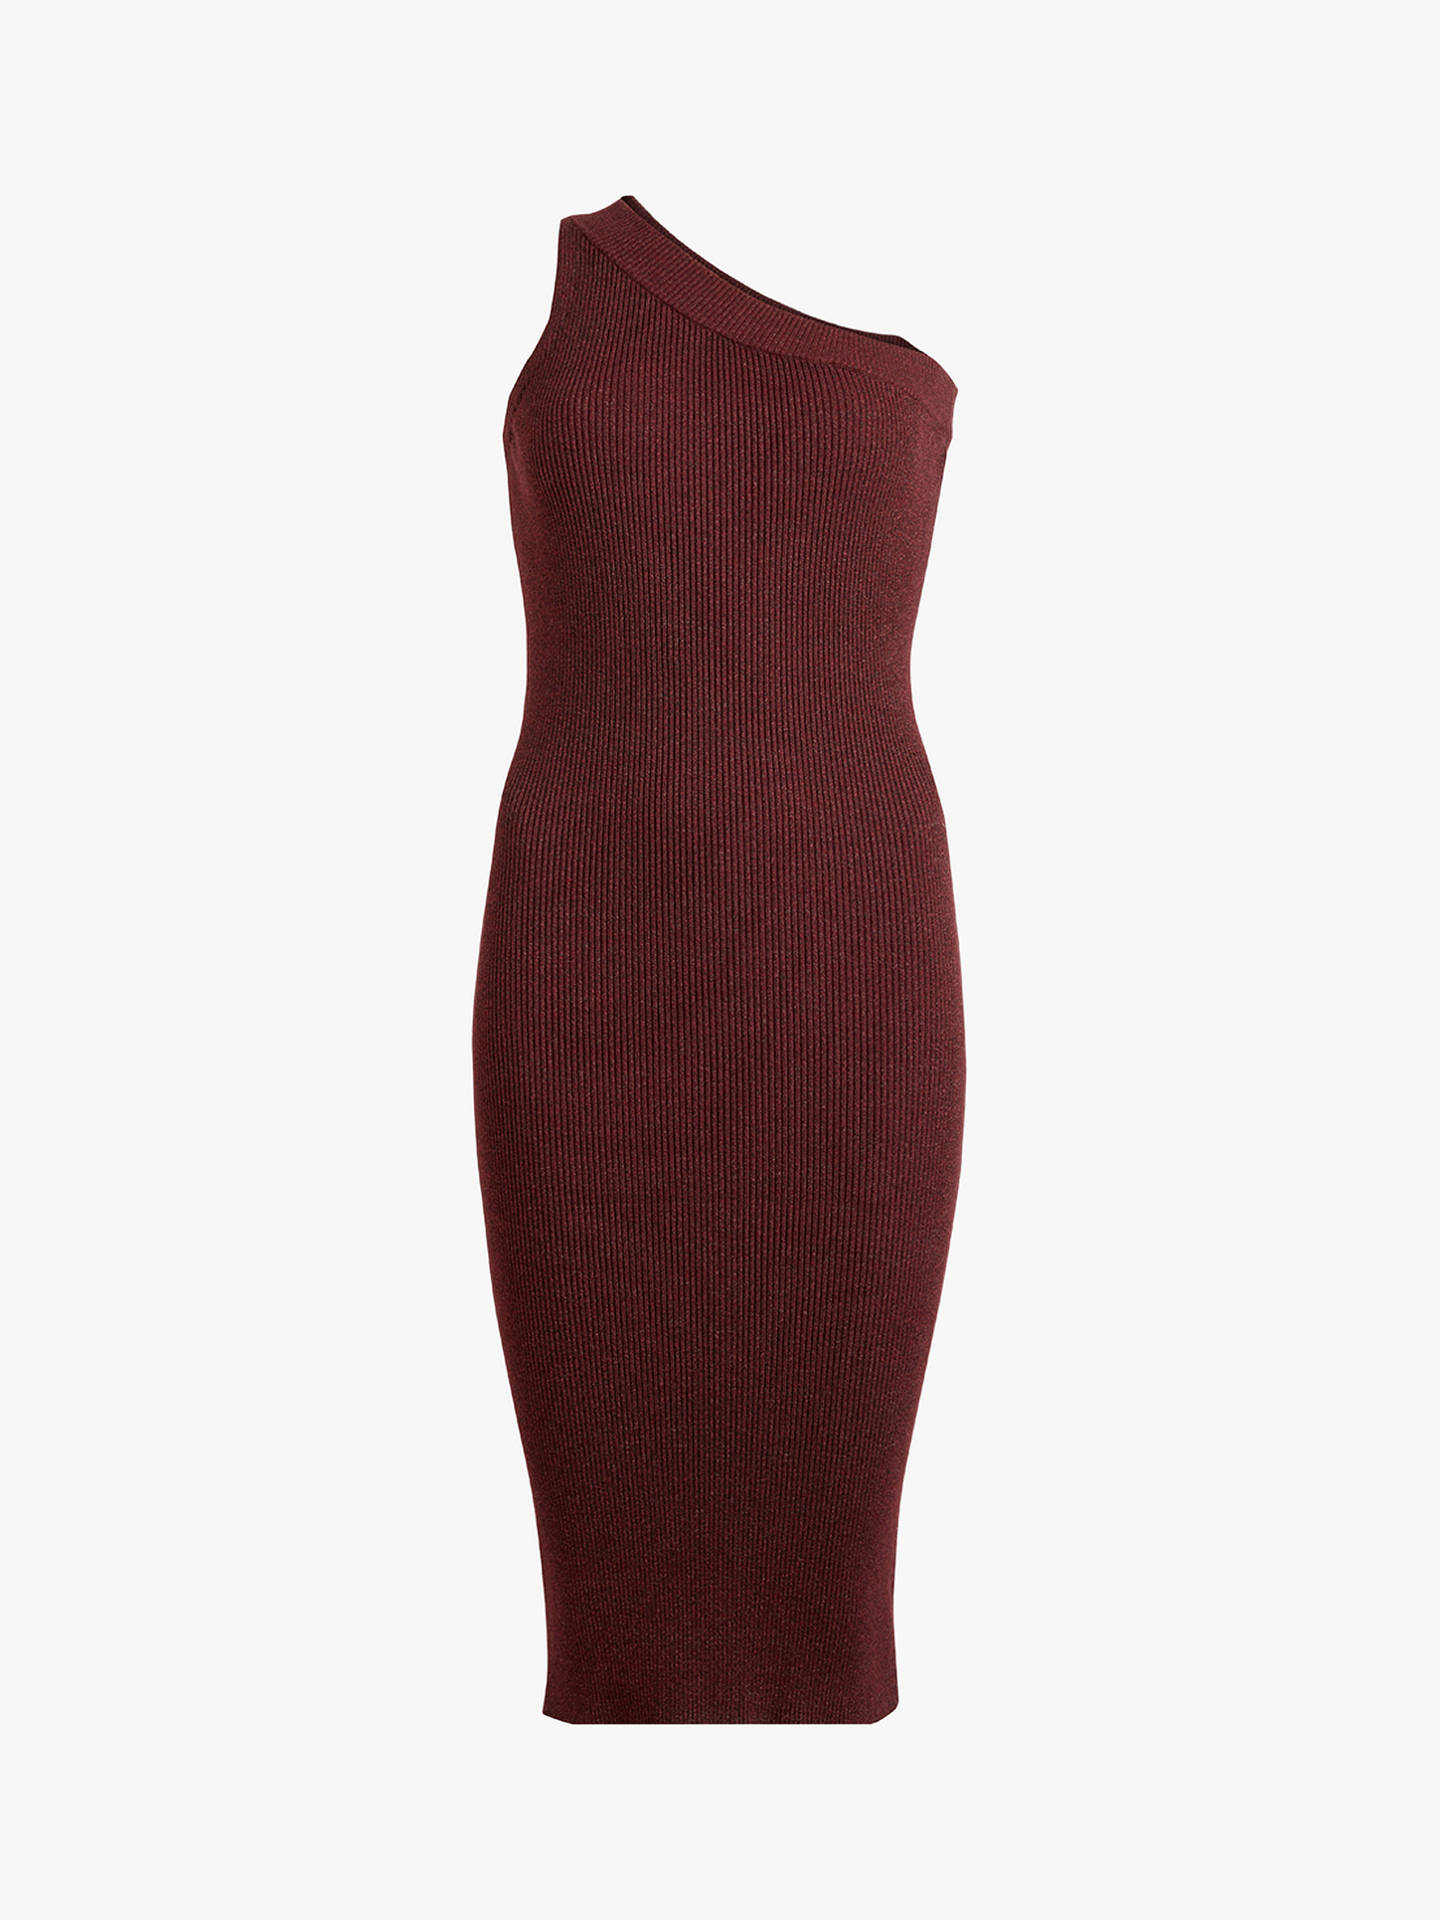 Buy AllSaints Chelle Knitted Dress, Bordeaux Red Twist, L Online at johnlewis.com